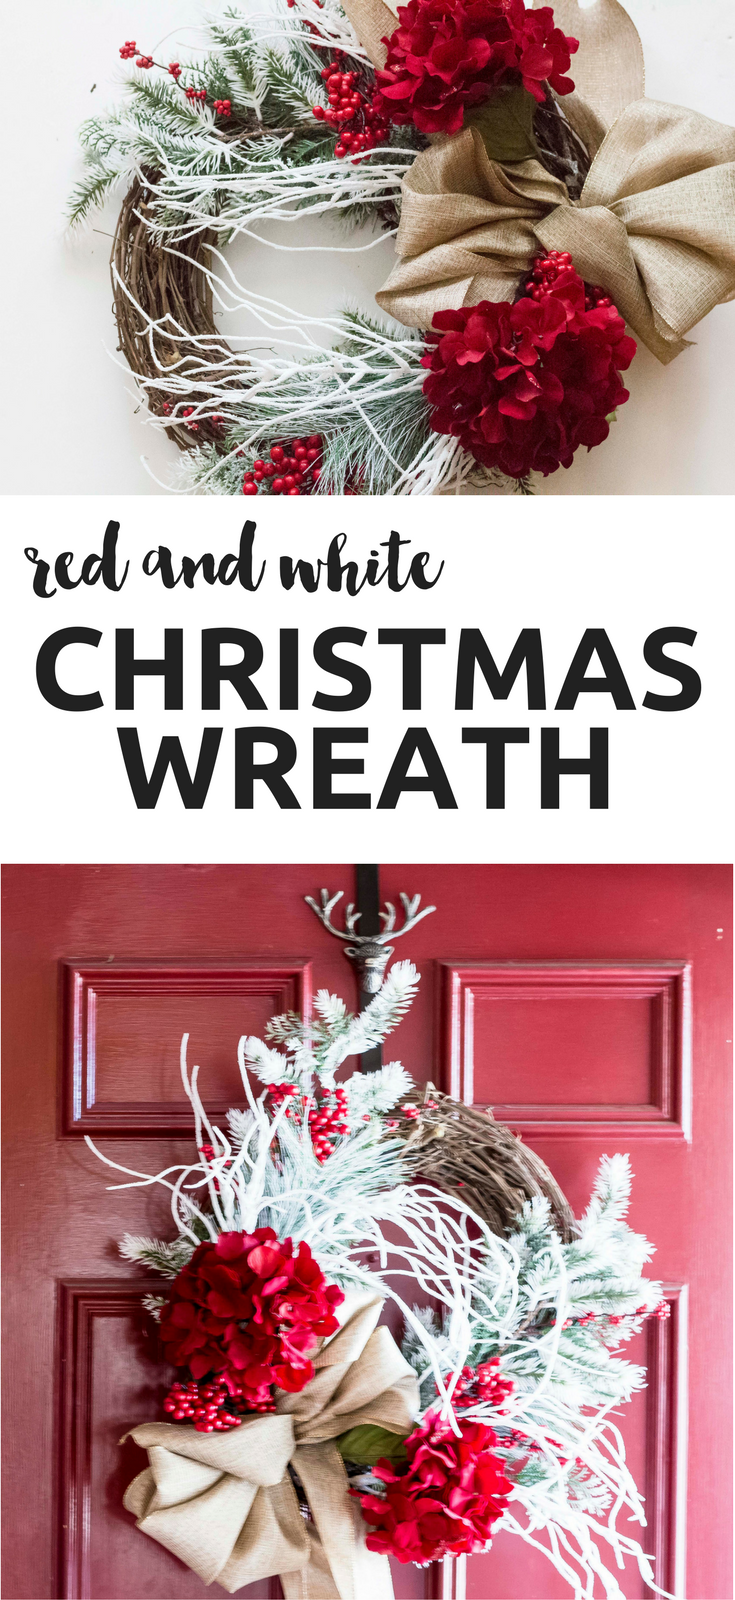 Try this Red and White Christmas wreath tutorial